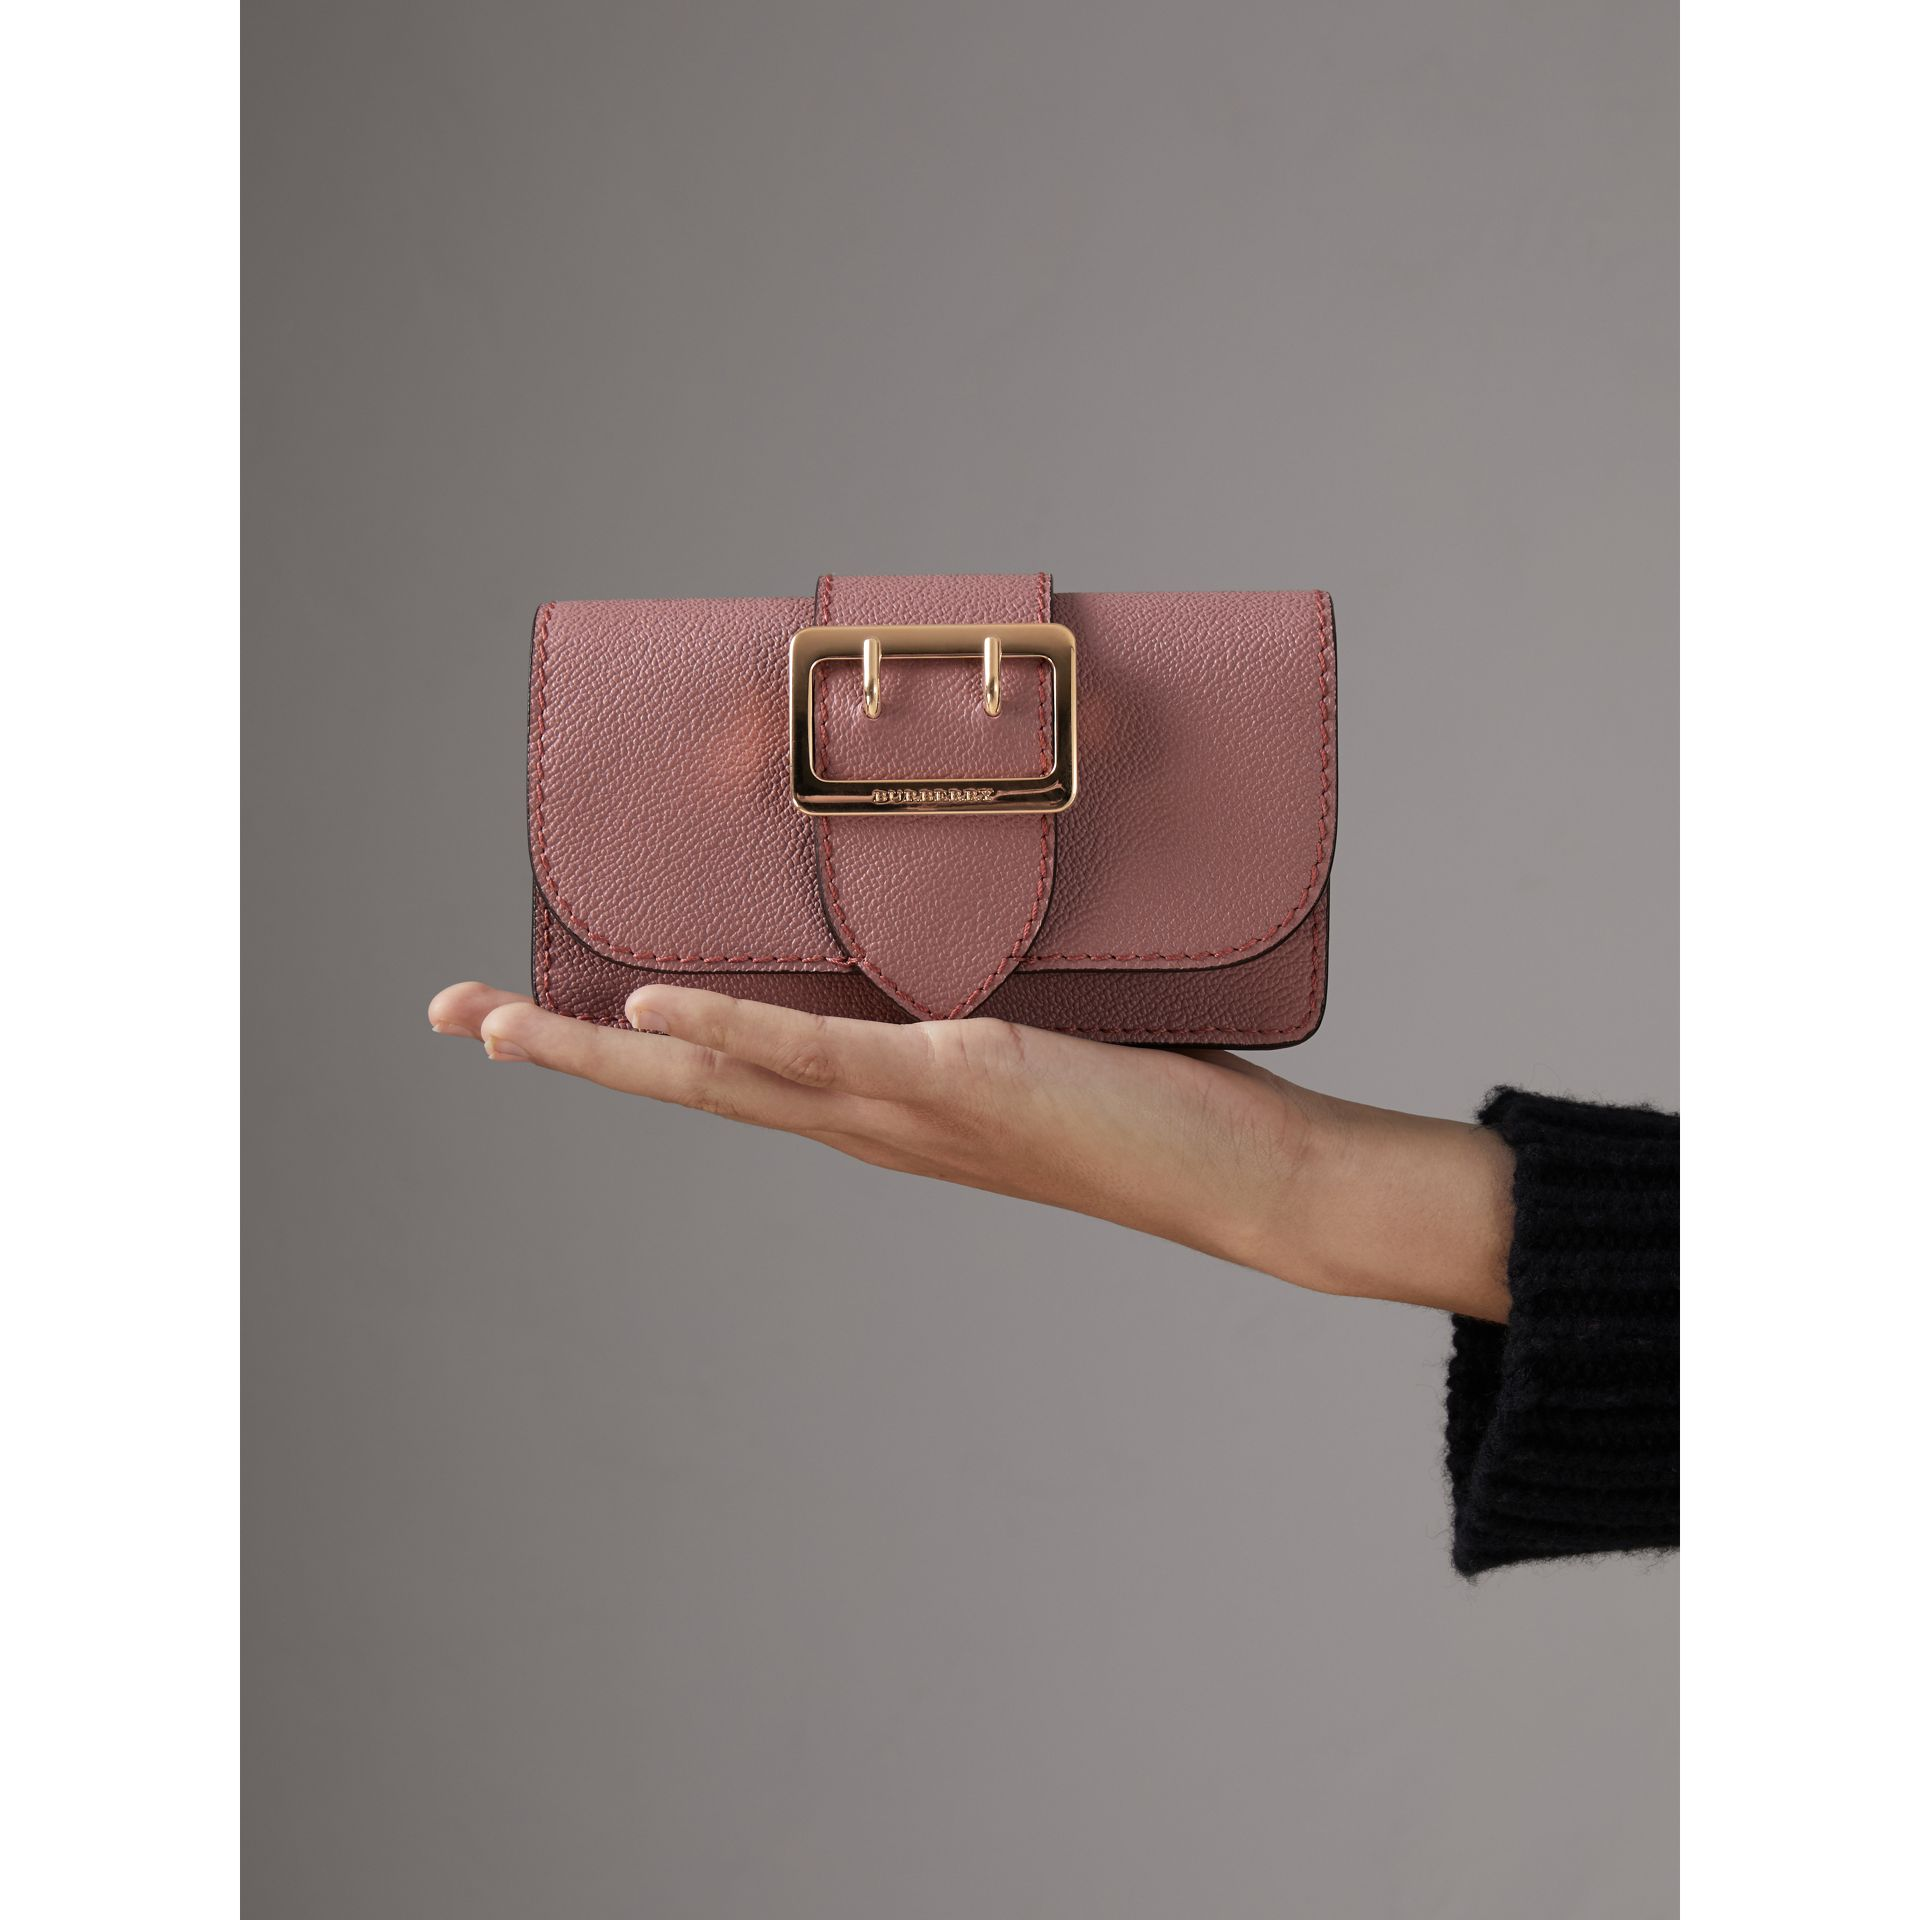 Borsa The Buckle mini in pelle a grana (Rosa Polvere) - Donna | Burberry - immagine della galleria 10